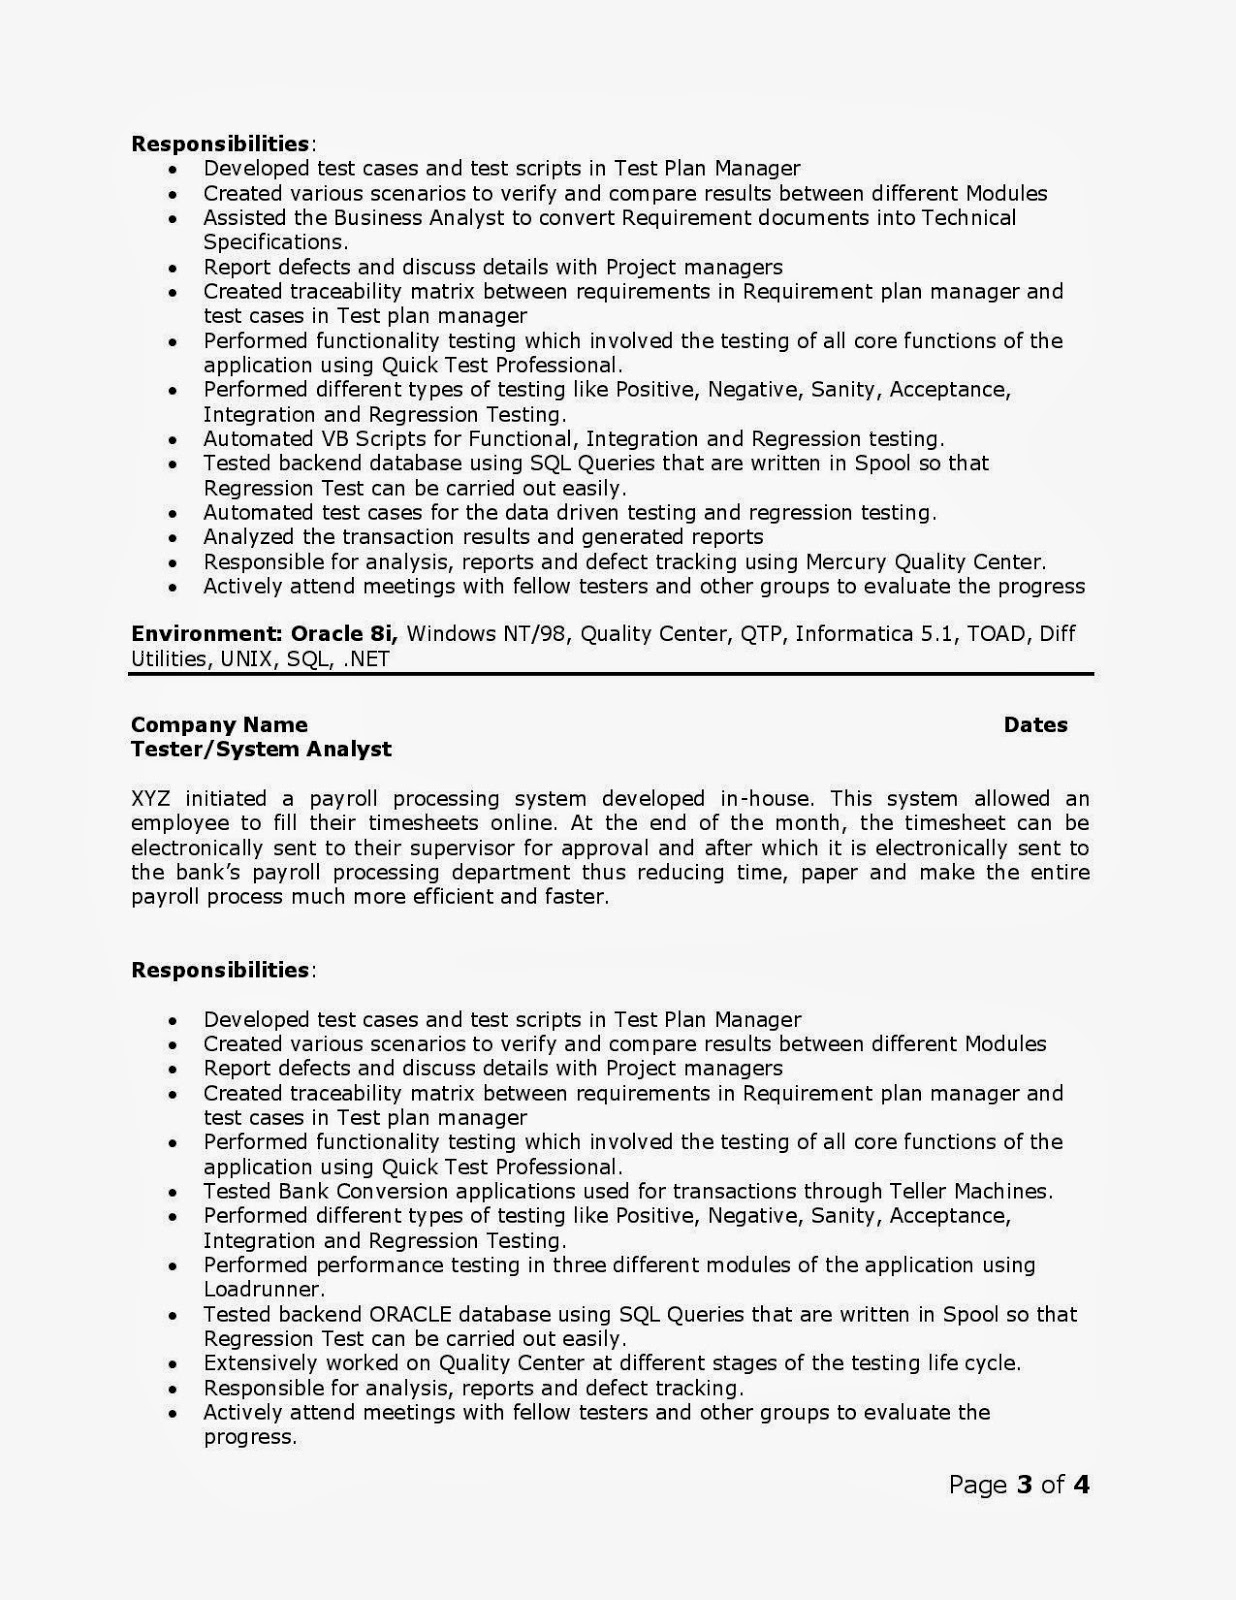 Resume for quality assurance analyst vatozozdevelopment recent posts spiritdancerdesigns Gallery